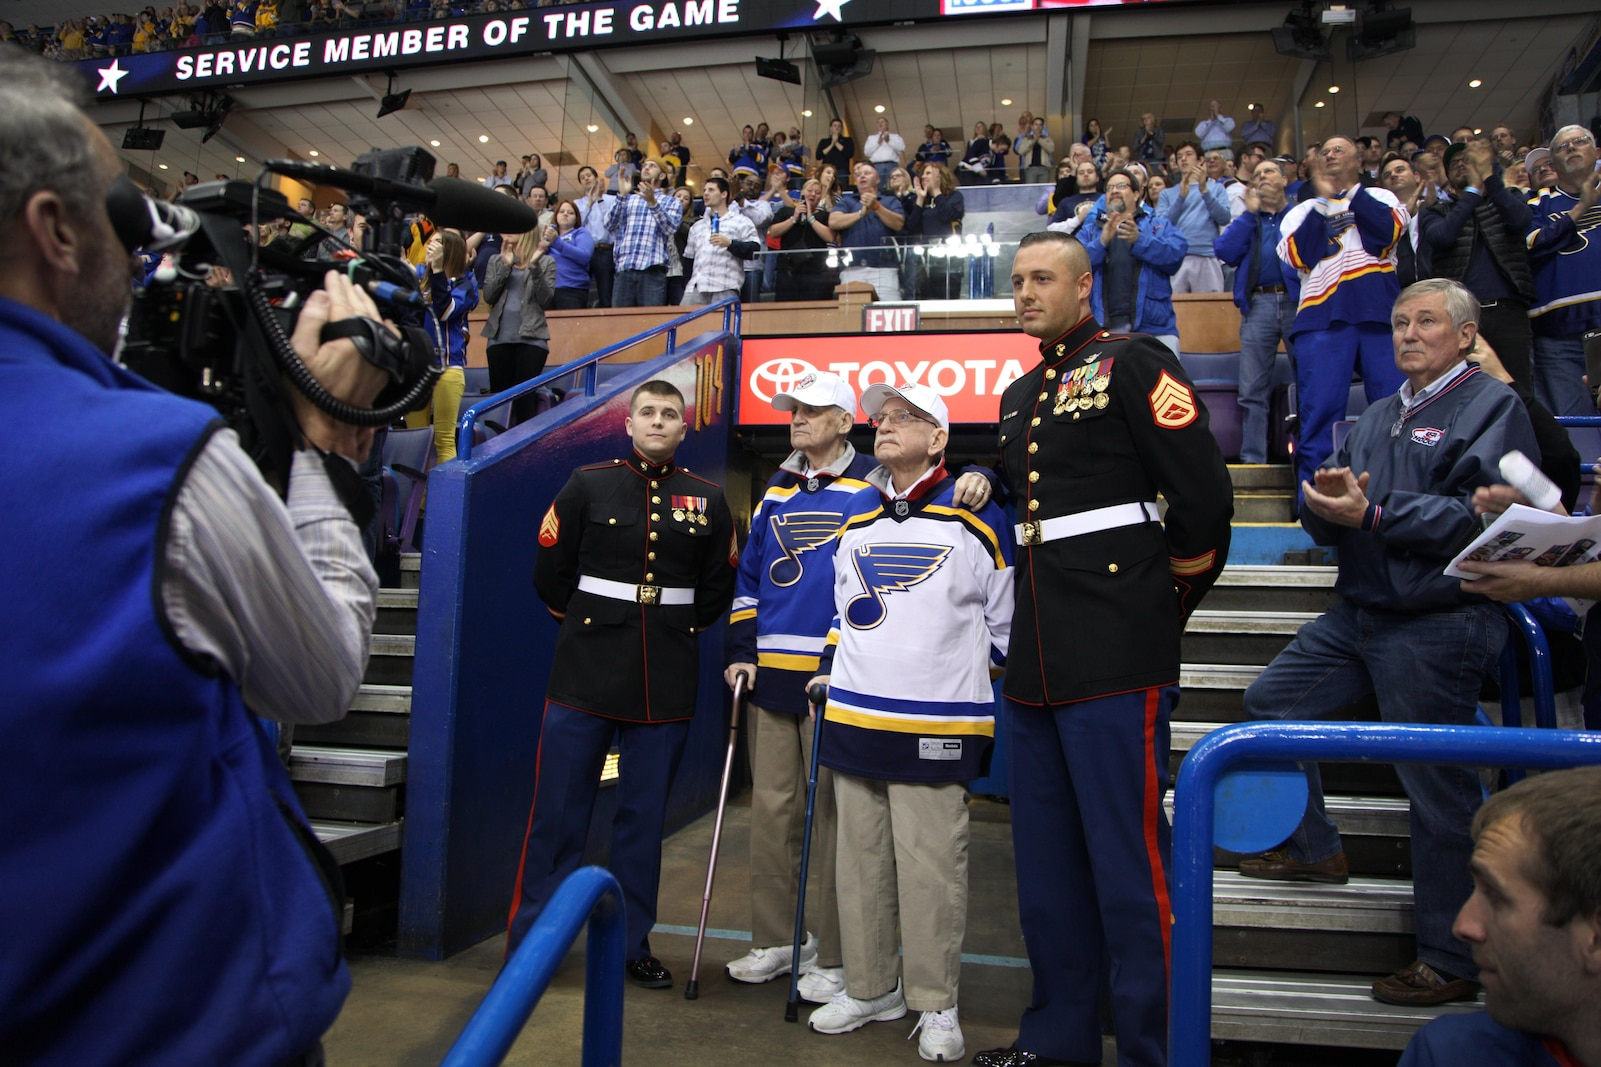 Lloyd, left, and Bill Rupp are honored as the USO Service Members of the game during a St. Louis Blues hockey game March 30 at Scott Trade Center in St. Louis. The twin brothers enlisted in 1942 into the Marine Corps and served throughout the Pacific. Lloyd was a rear gunner on a Douglas SBD dauntless dive bomber and Bill was an anti-aircraft gunner. Both served four years in the Marine Corps during WWII and settled back in St. Louis. SSgt. Derek Krause, right, is the Pool Program Specialist and Sgt. Cody Tubbs is the Operations Clerk for Recruiting Station St. Louis.